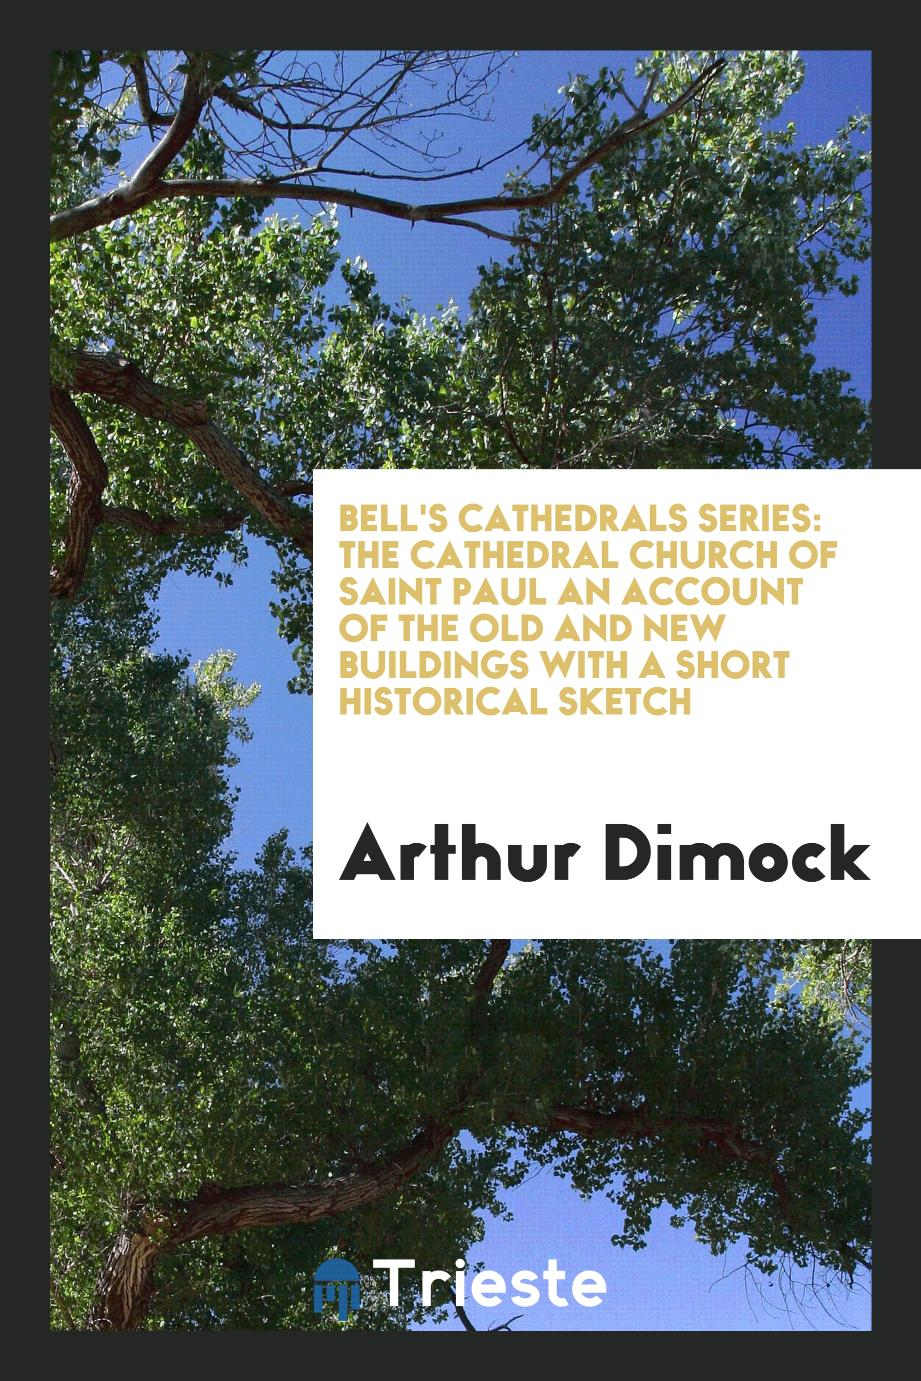 Bell's Cathedrals Series: The Cathedral Church of Saint Paul An Account of the Old and New Buildings with a Short Historical Sketch